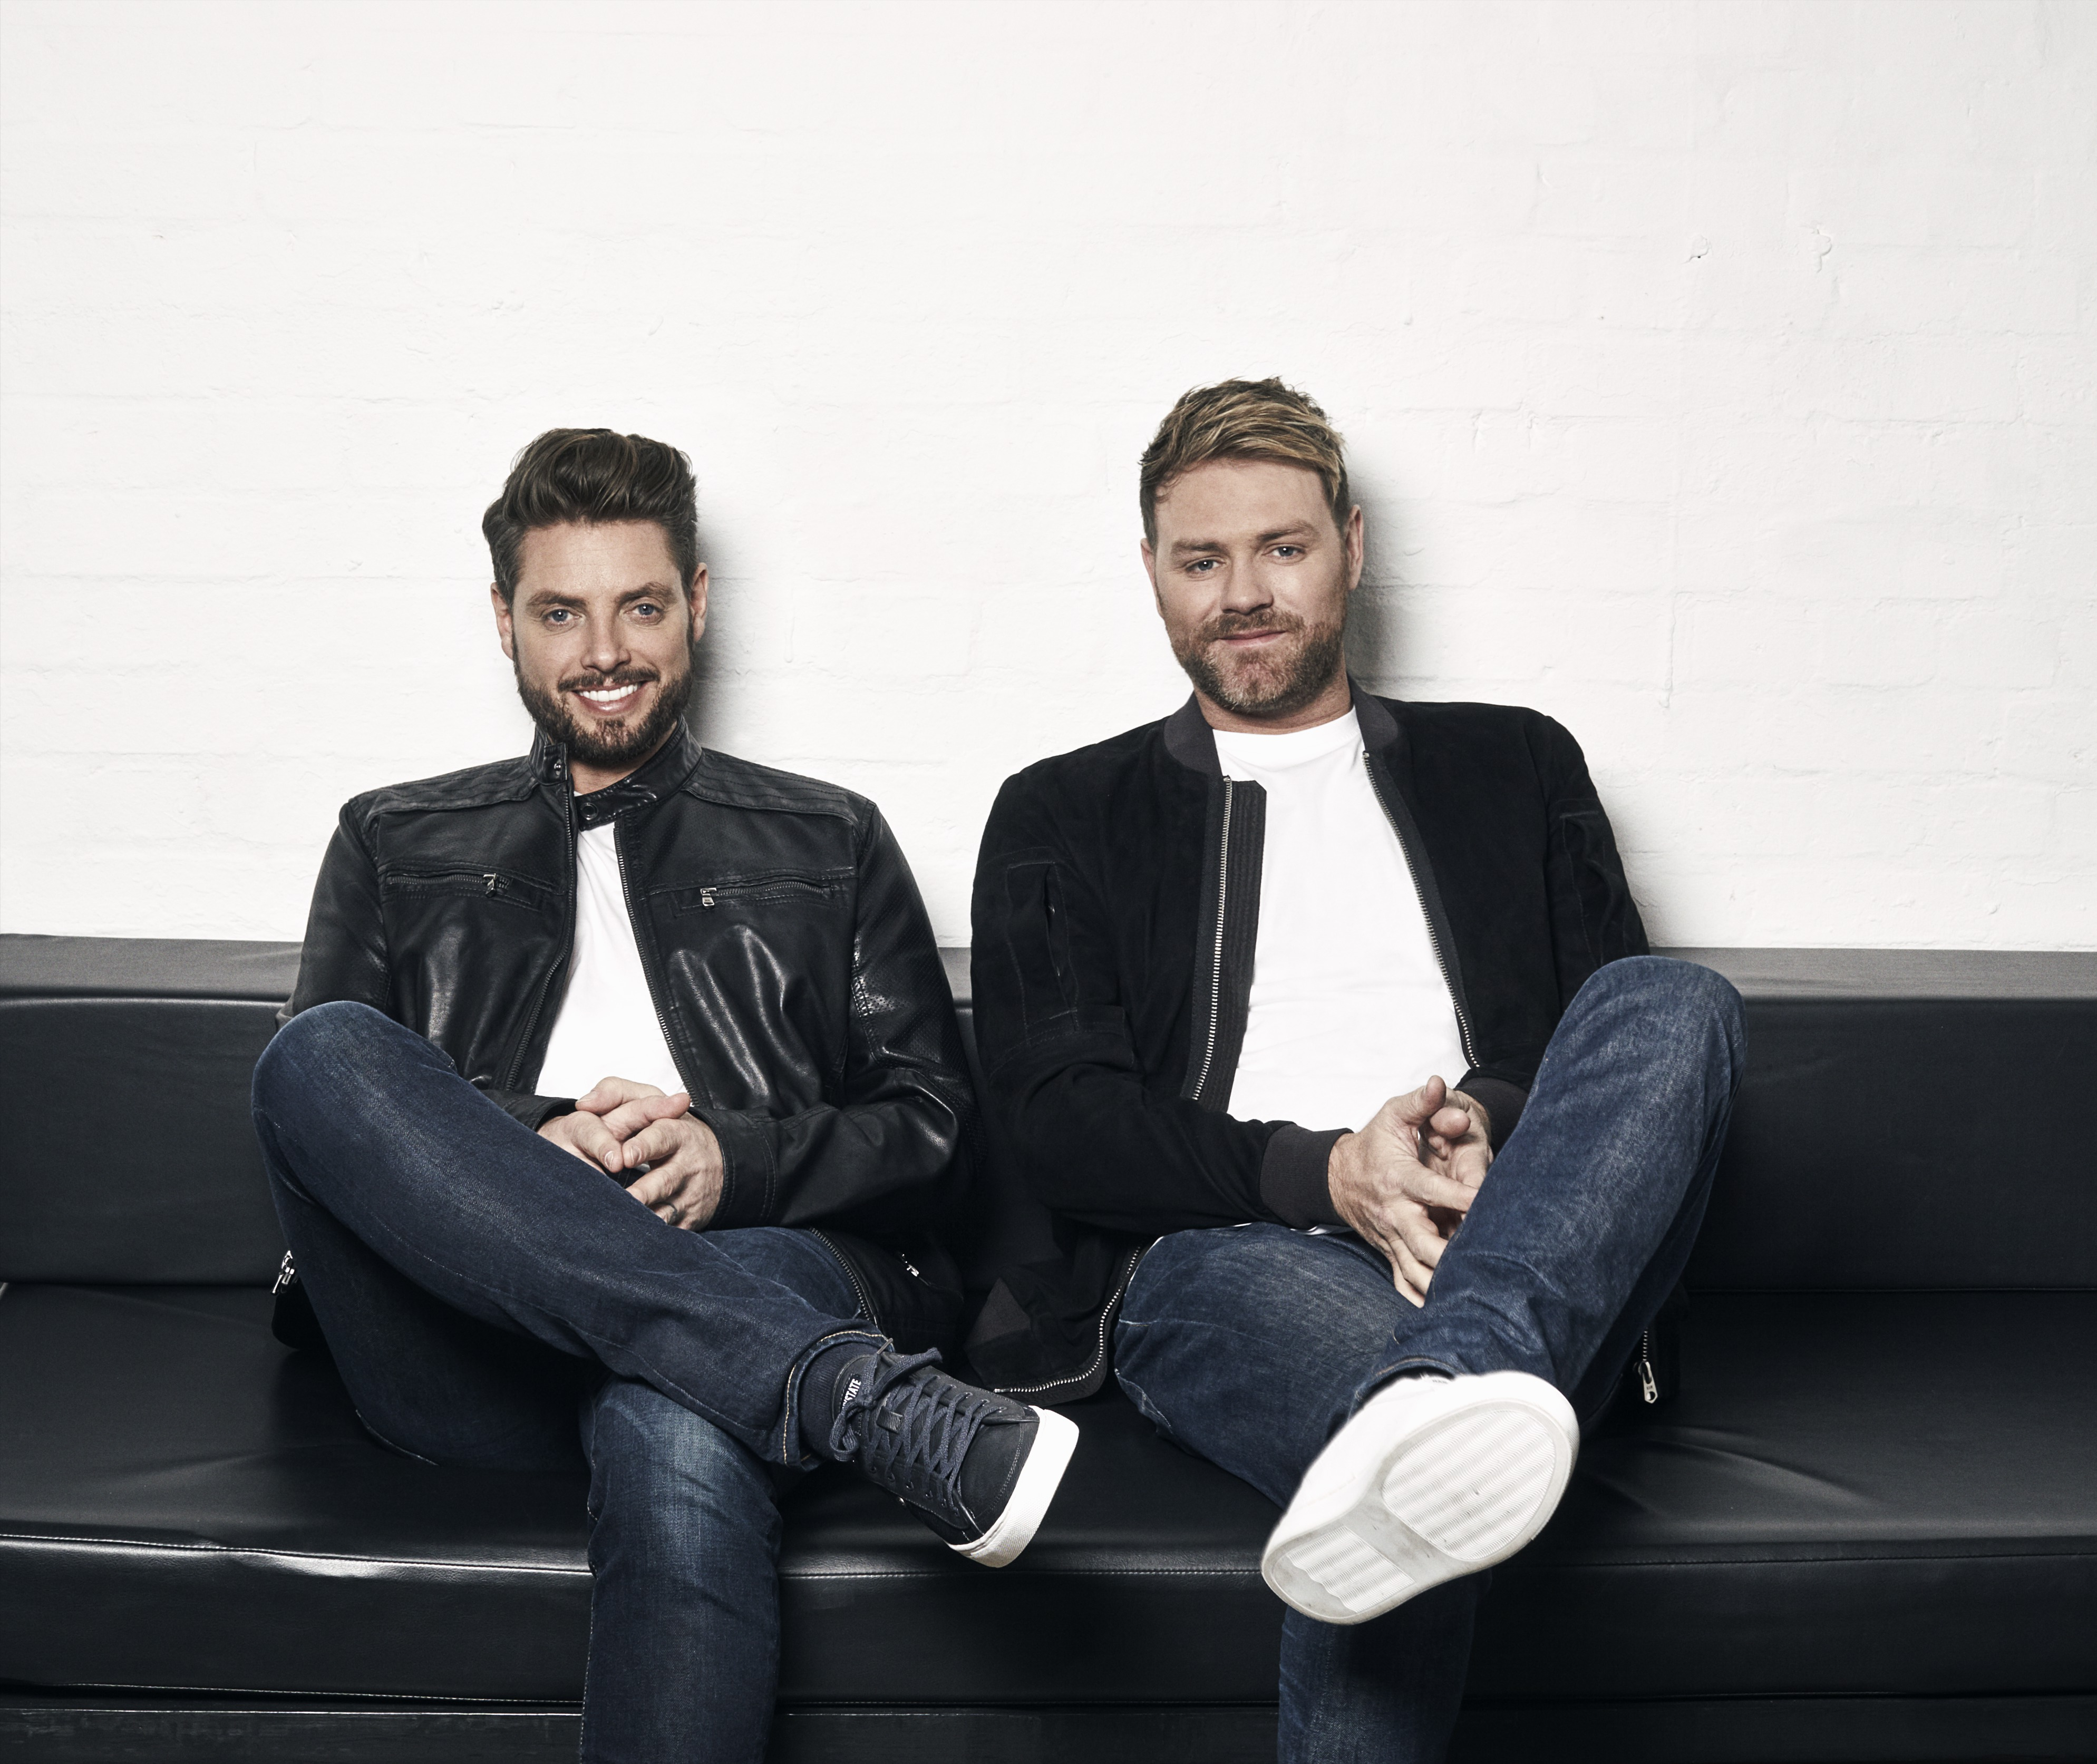 BOYZLIFE FT. LEFT - KEITH DUFFY (BOYZONE) & RIGHT BRIAN MCFADDEN (WESTLIFE)